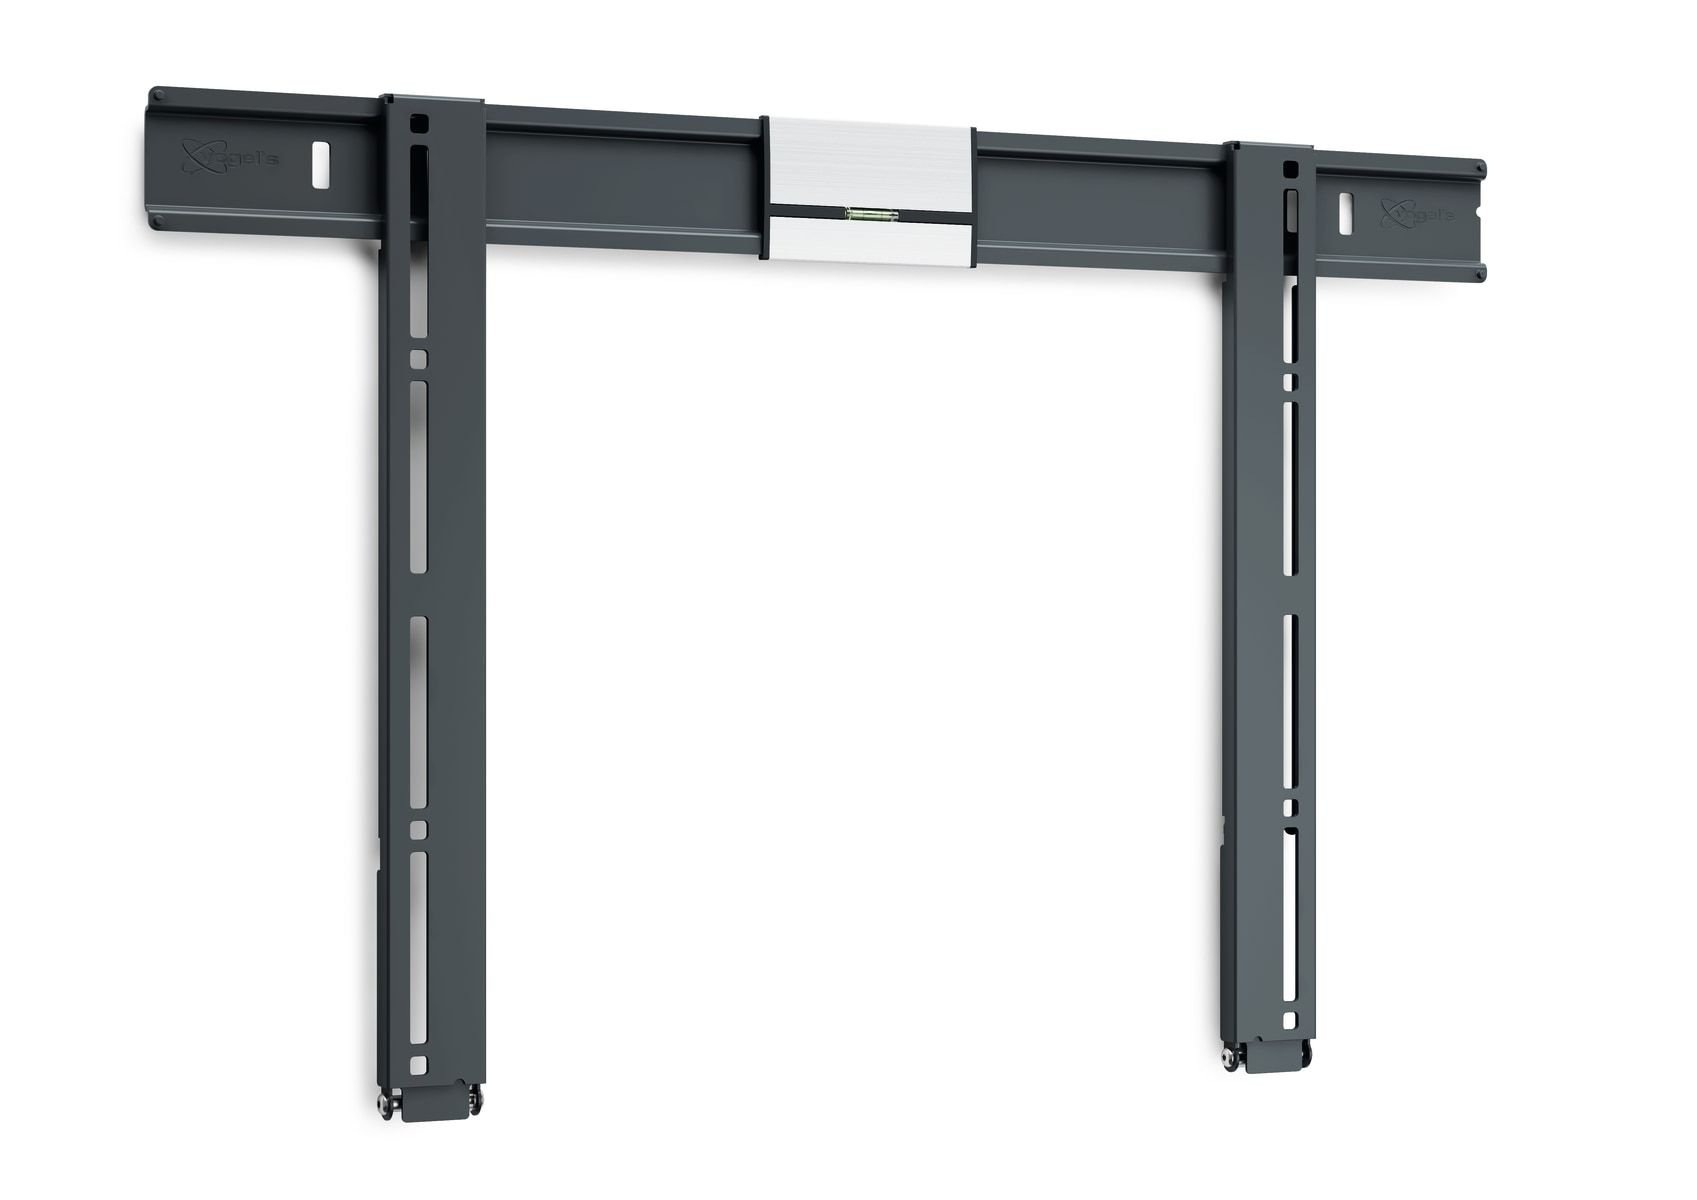 Vogel's TV Wall Mount, THIN 505 Extra Thin Fixed Bracket for 40 - 65 inch TVs, Black